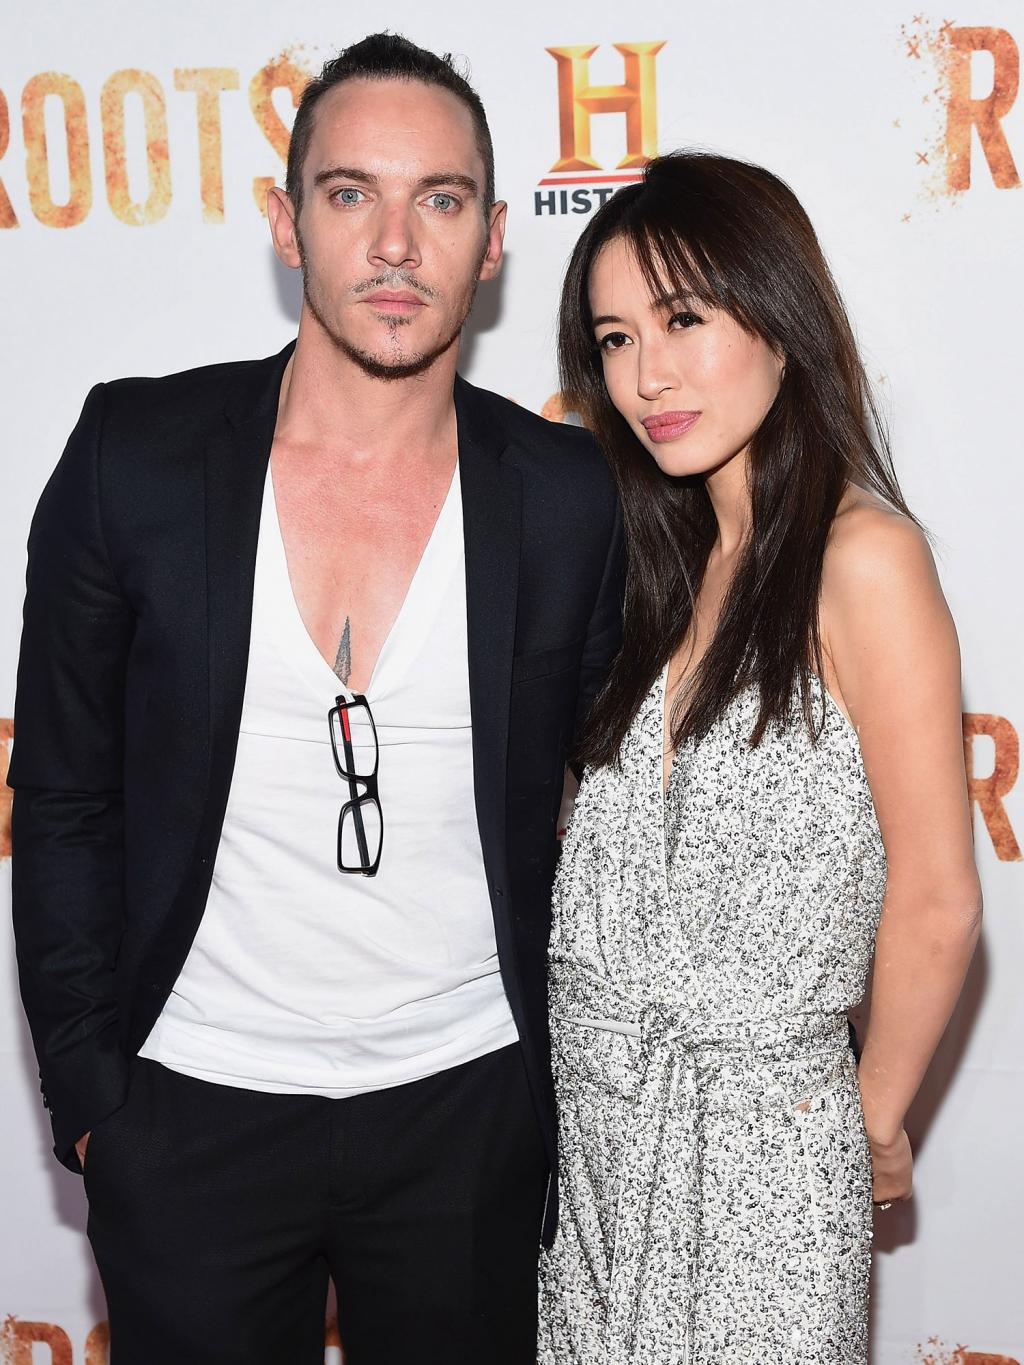 Jonathan Rhys Meyers and Fiancée Mara Lane Expecting First Child